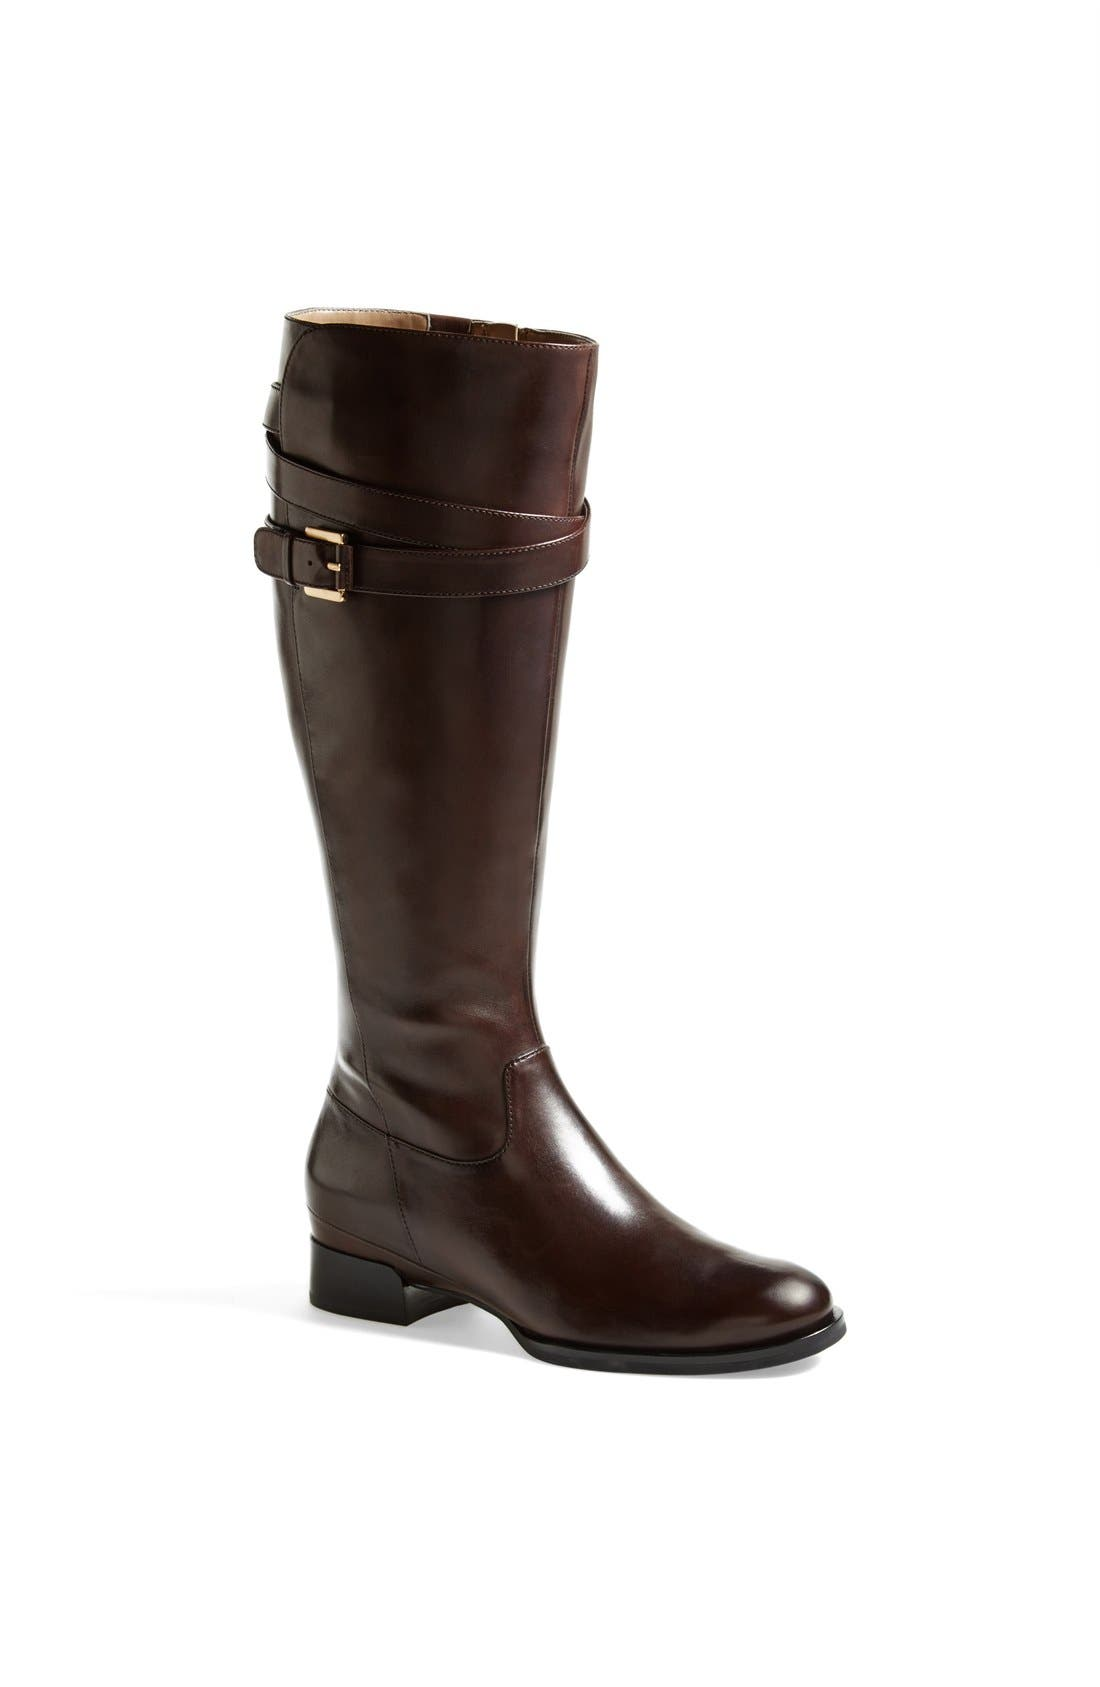 Alternate Image 1 Selected - ECCO 'Sullivan' Leather Boot (Women)